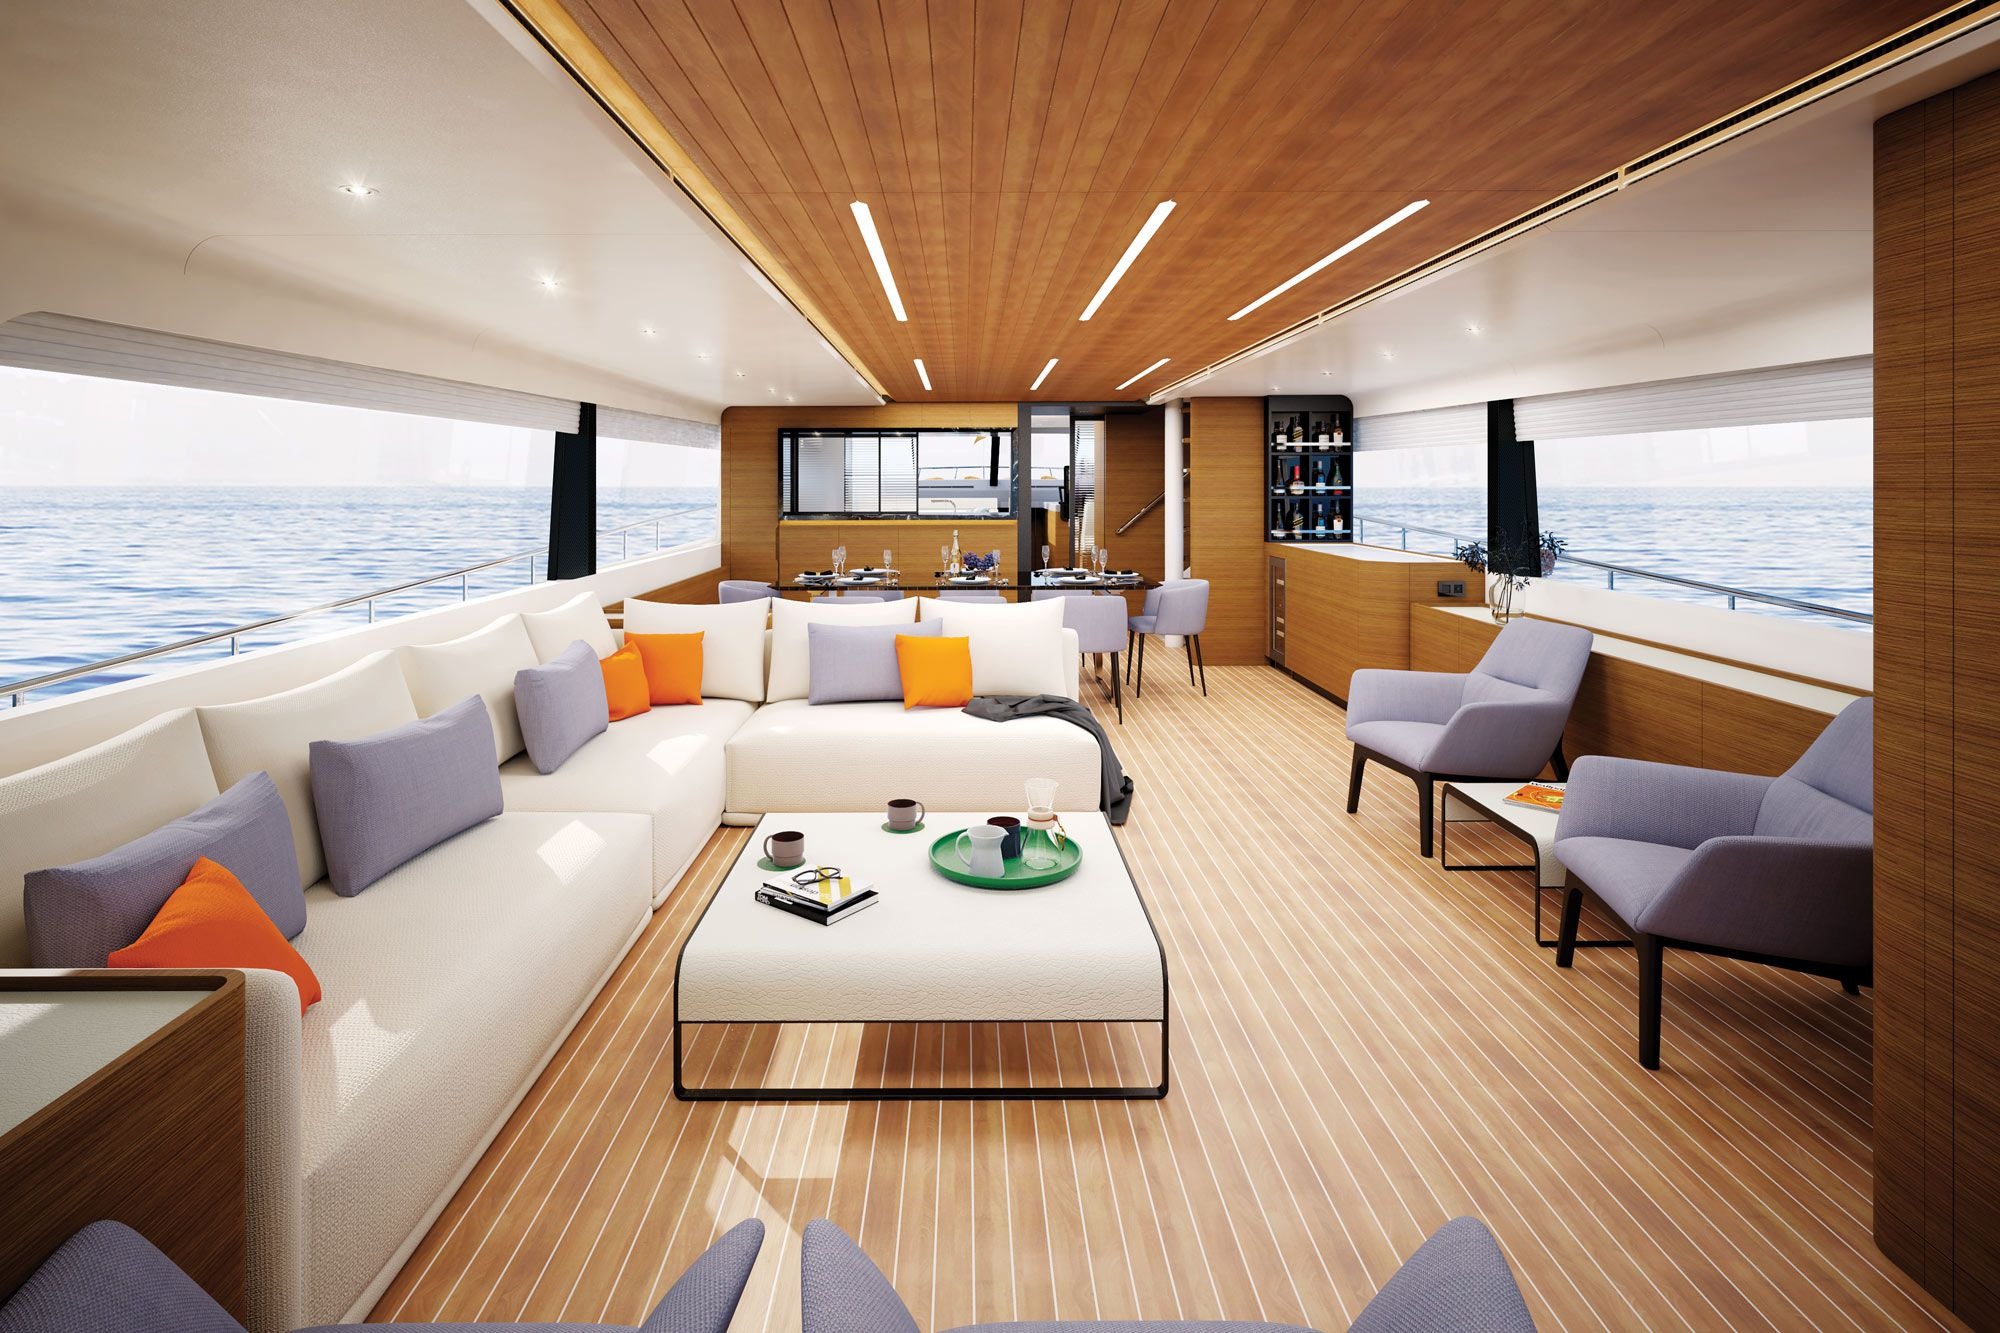 The main deck has a constant connection to the sea with nearly 360 degrees of glass. Ambient light adds to the sense of interior volume. The salon has an L shaped settee to port with two loose chairs across, and there is formal dining for six guests forward of the sitting area.